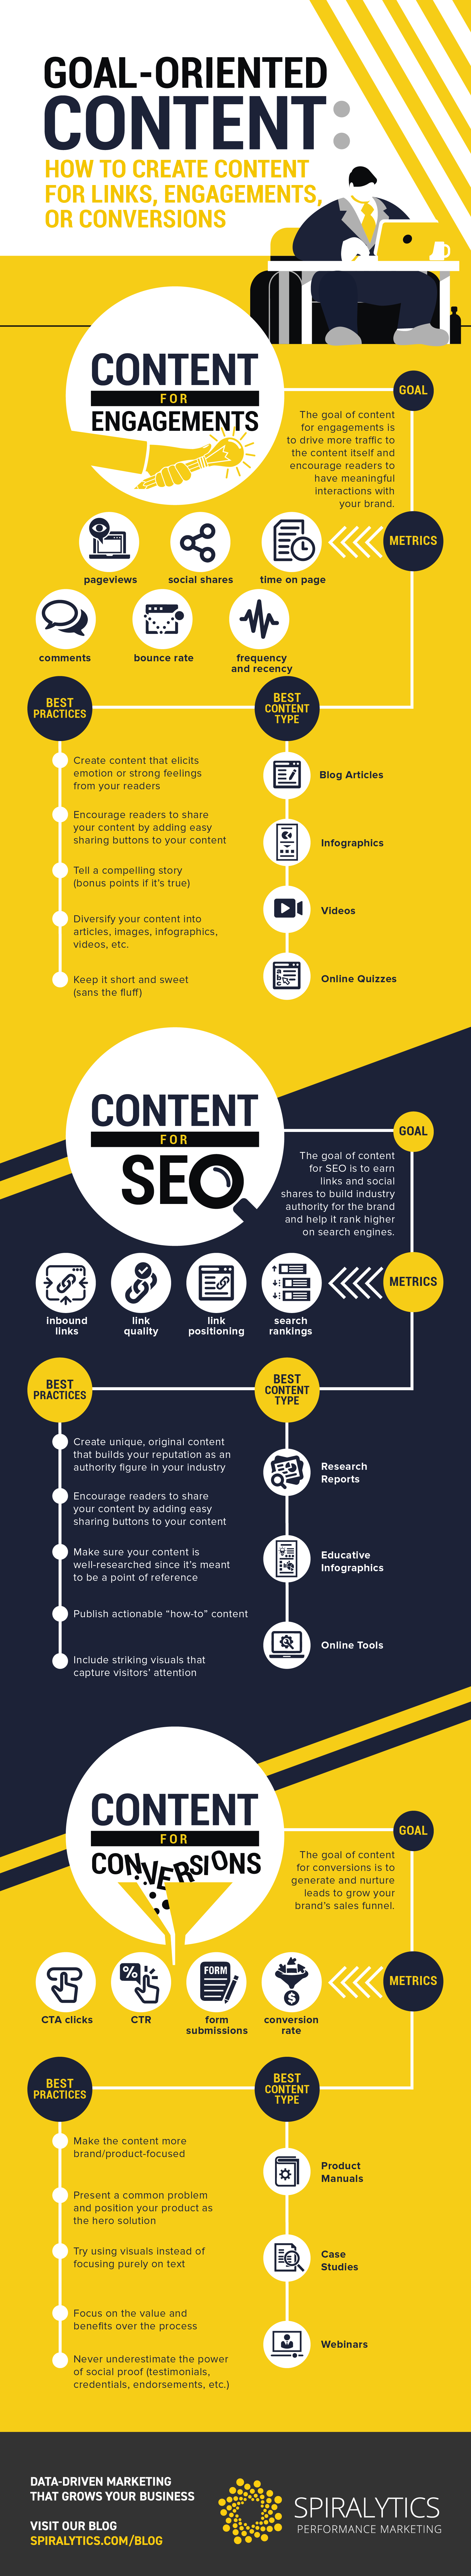 Goal-Oriented Content- How to Create Content for Links, Engagements, or Conversions_rev1-02